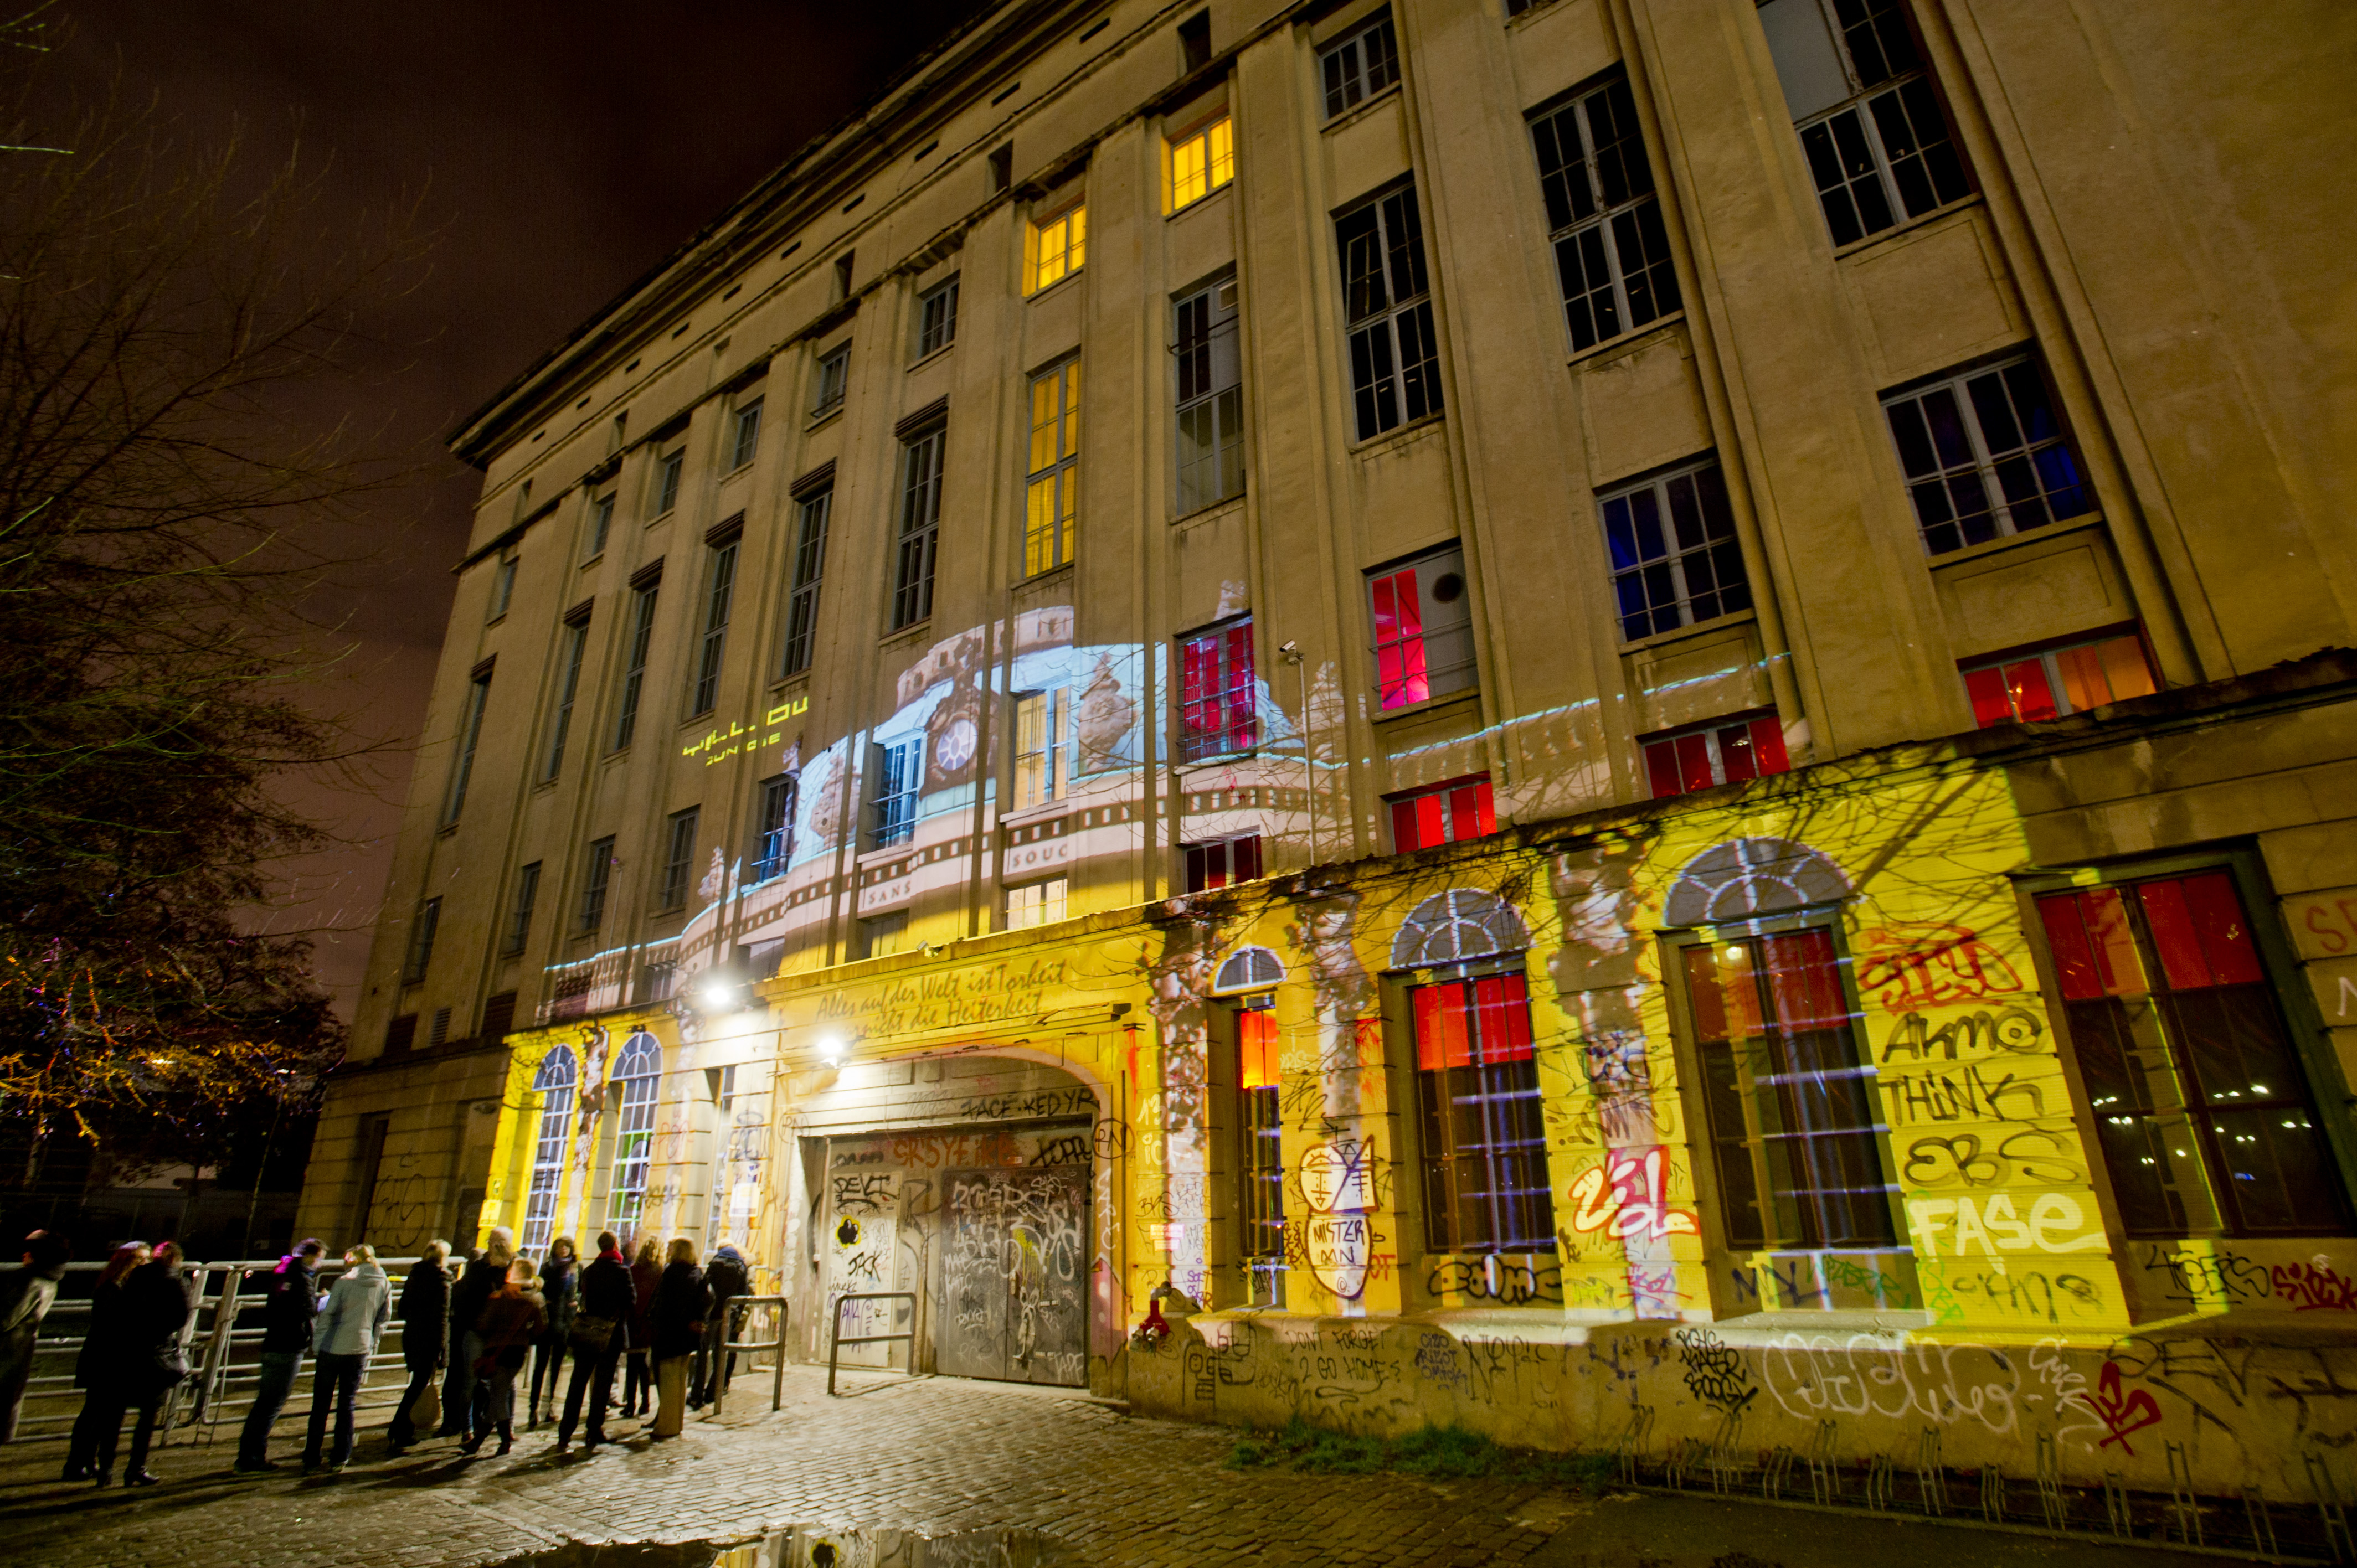 A projection on the facade of Berghain nightclub in Berlin.